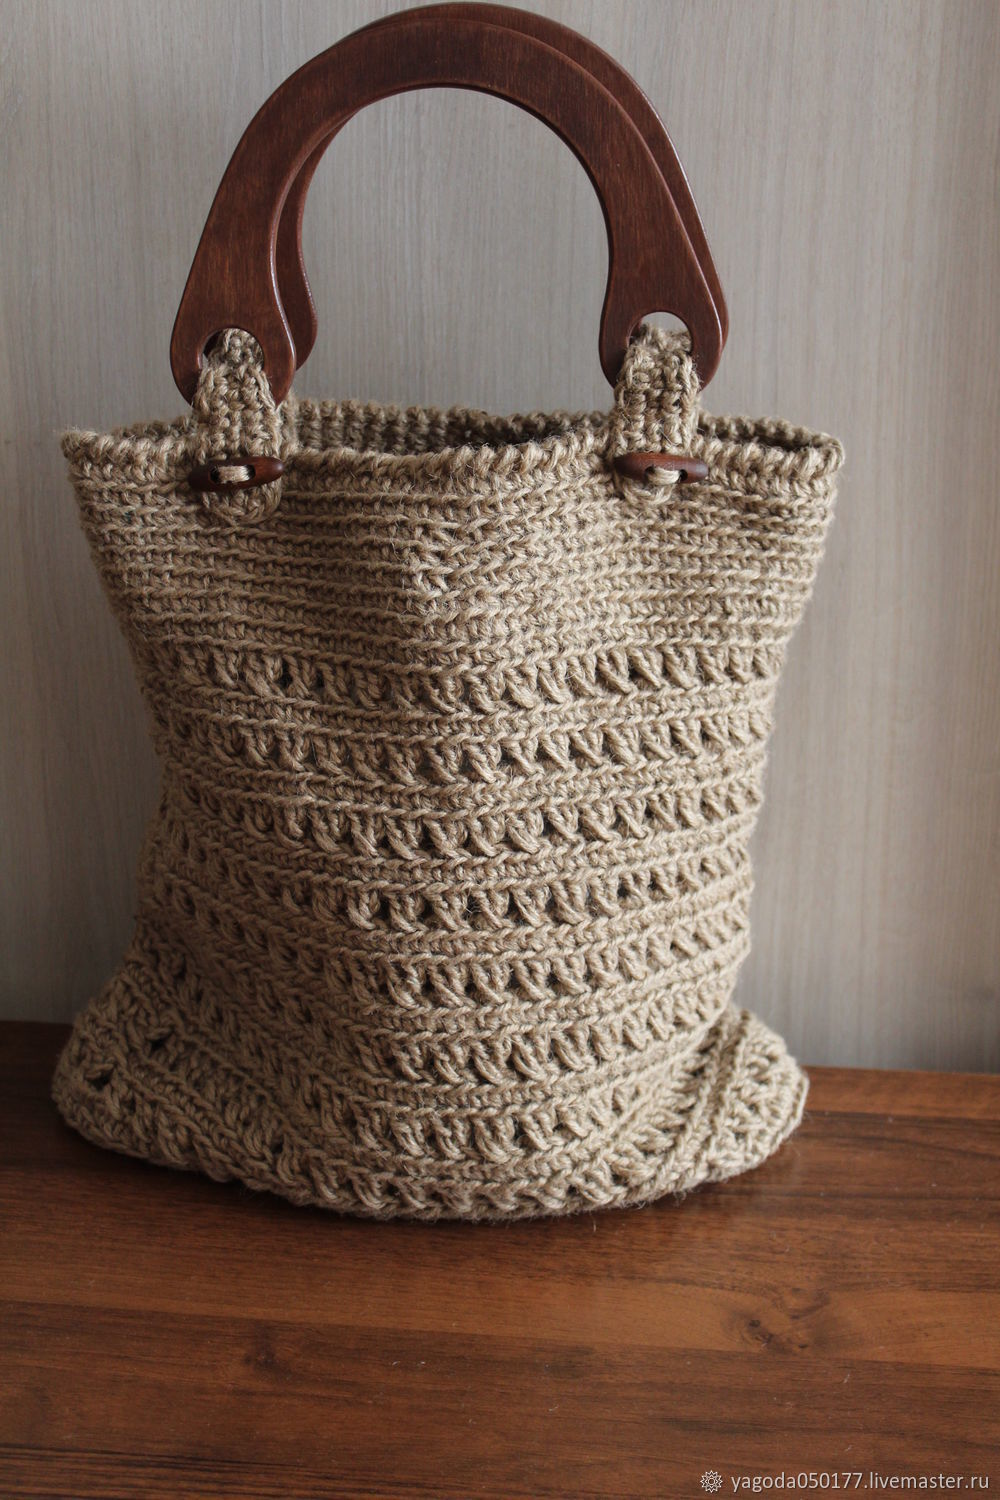 Bags & Accessories handmade. Livemaster - handmade. Buy Bag-basket of jute 'Once upon a time''.Jute